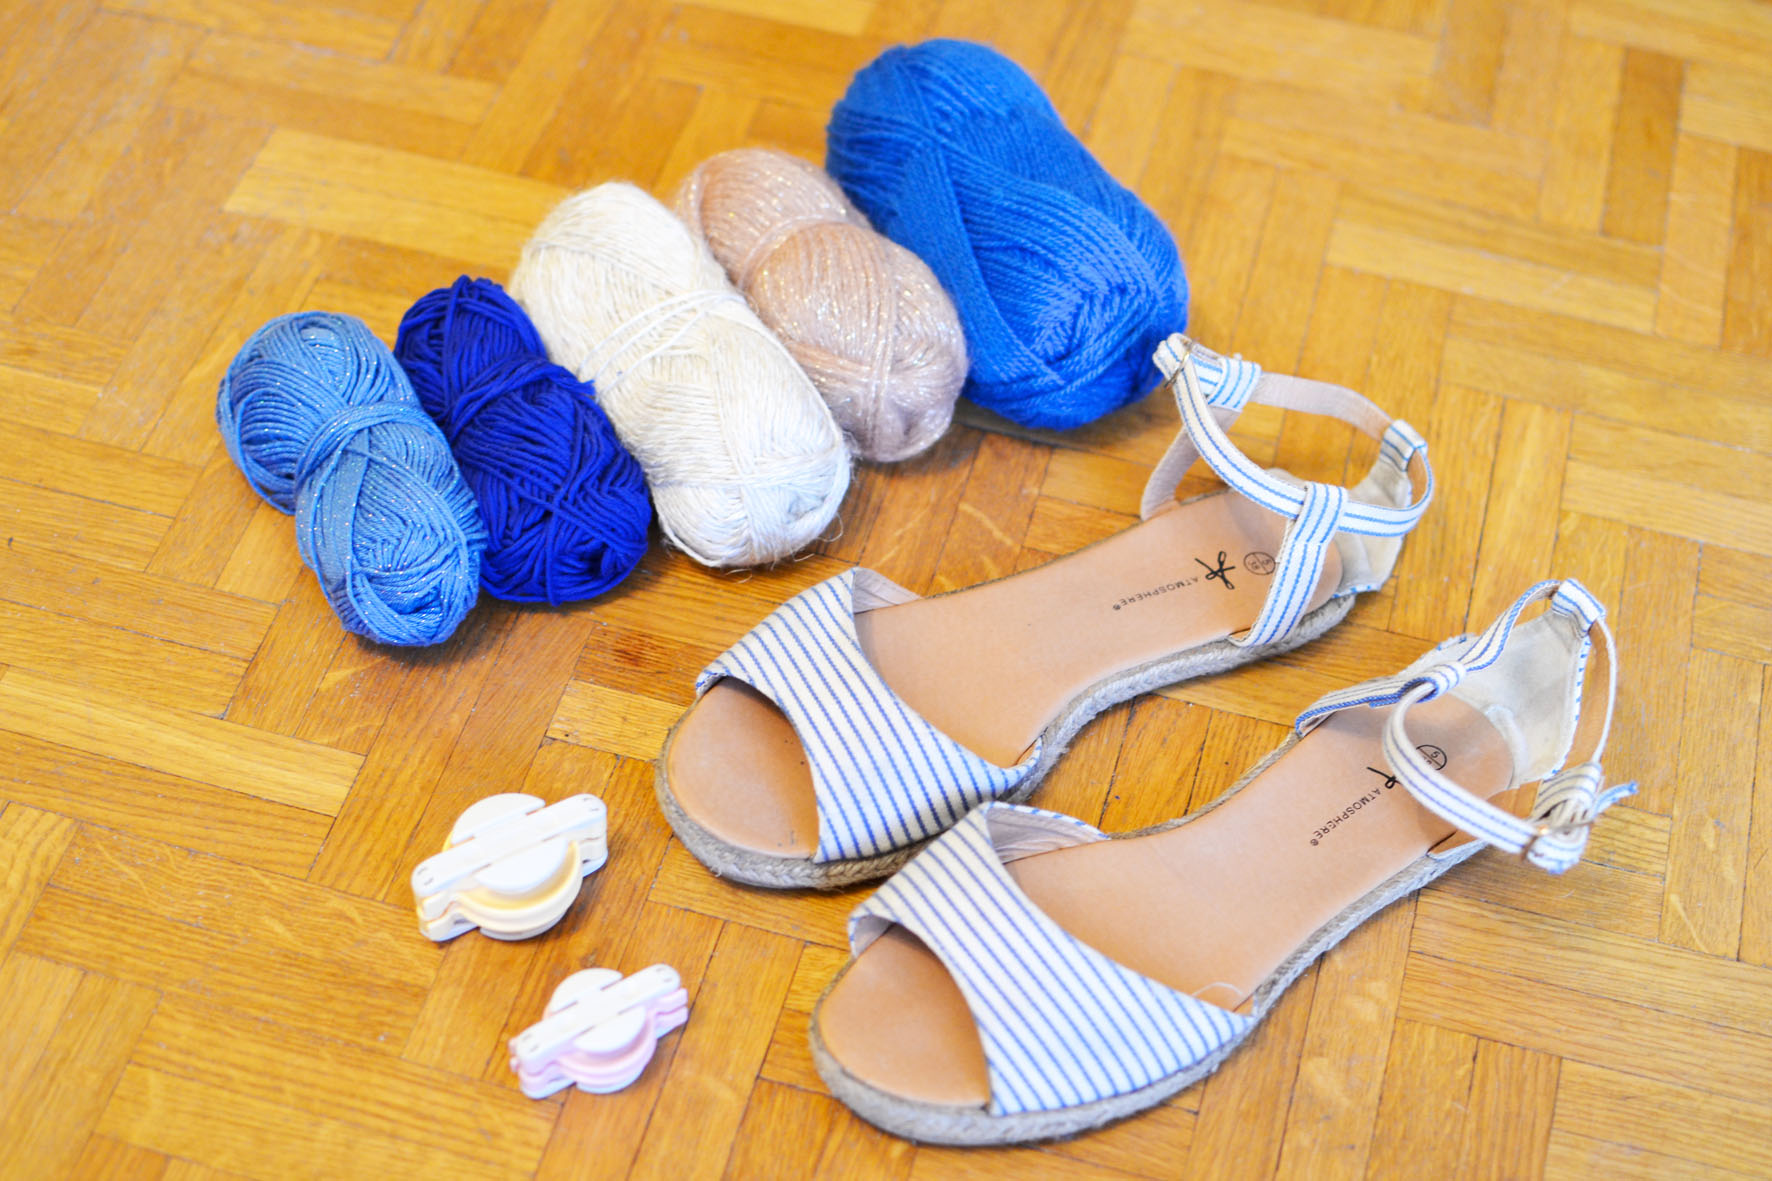 chaussures a pompons (10)